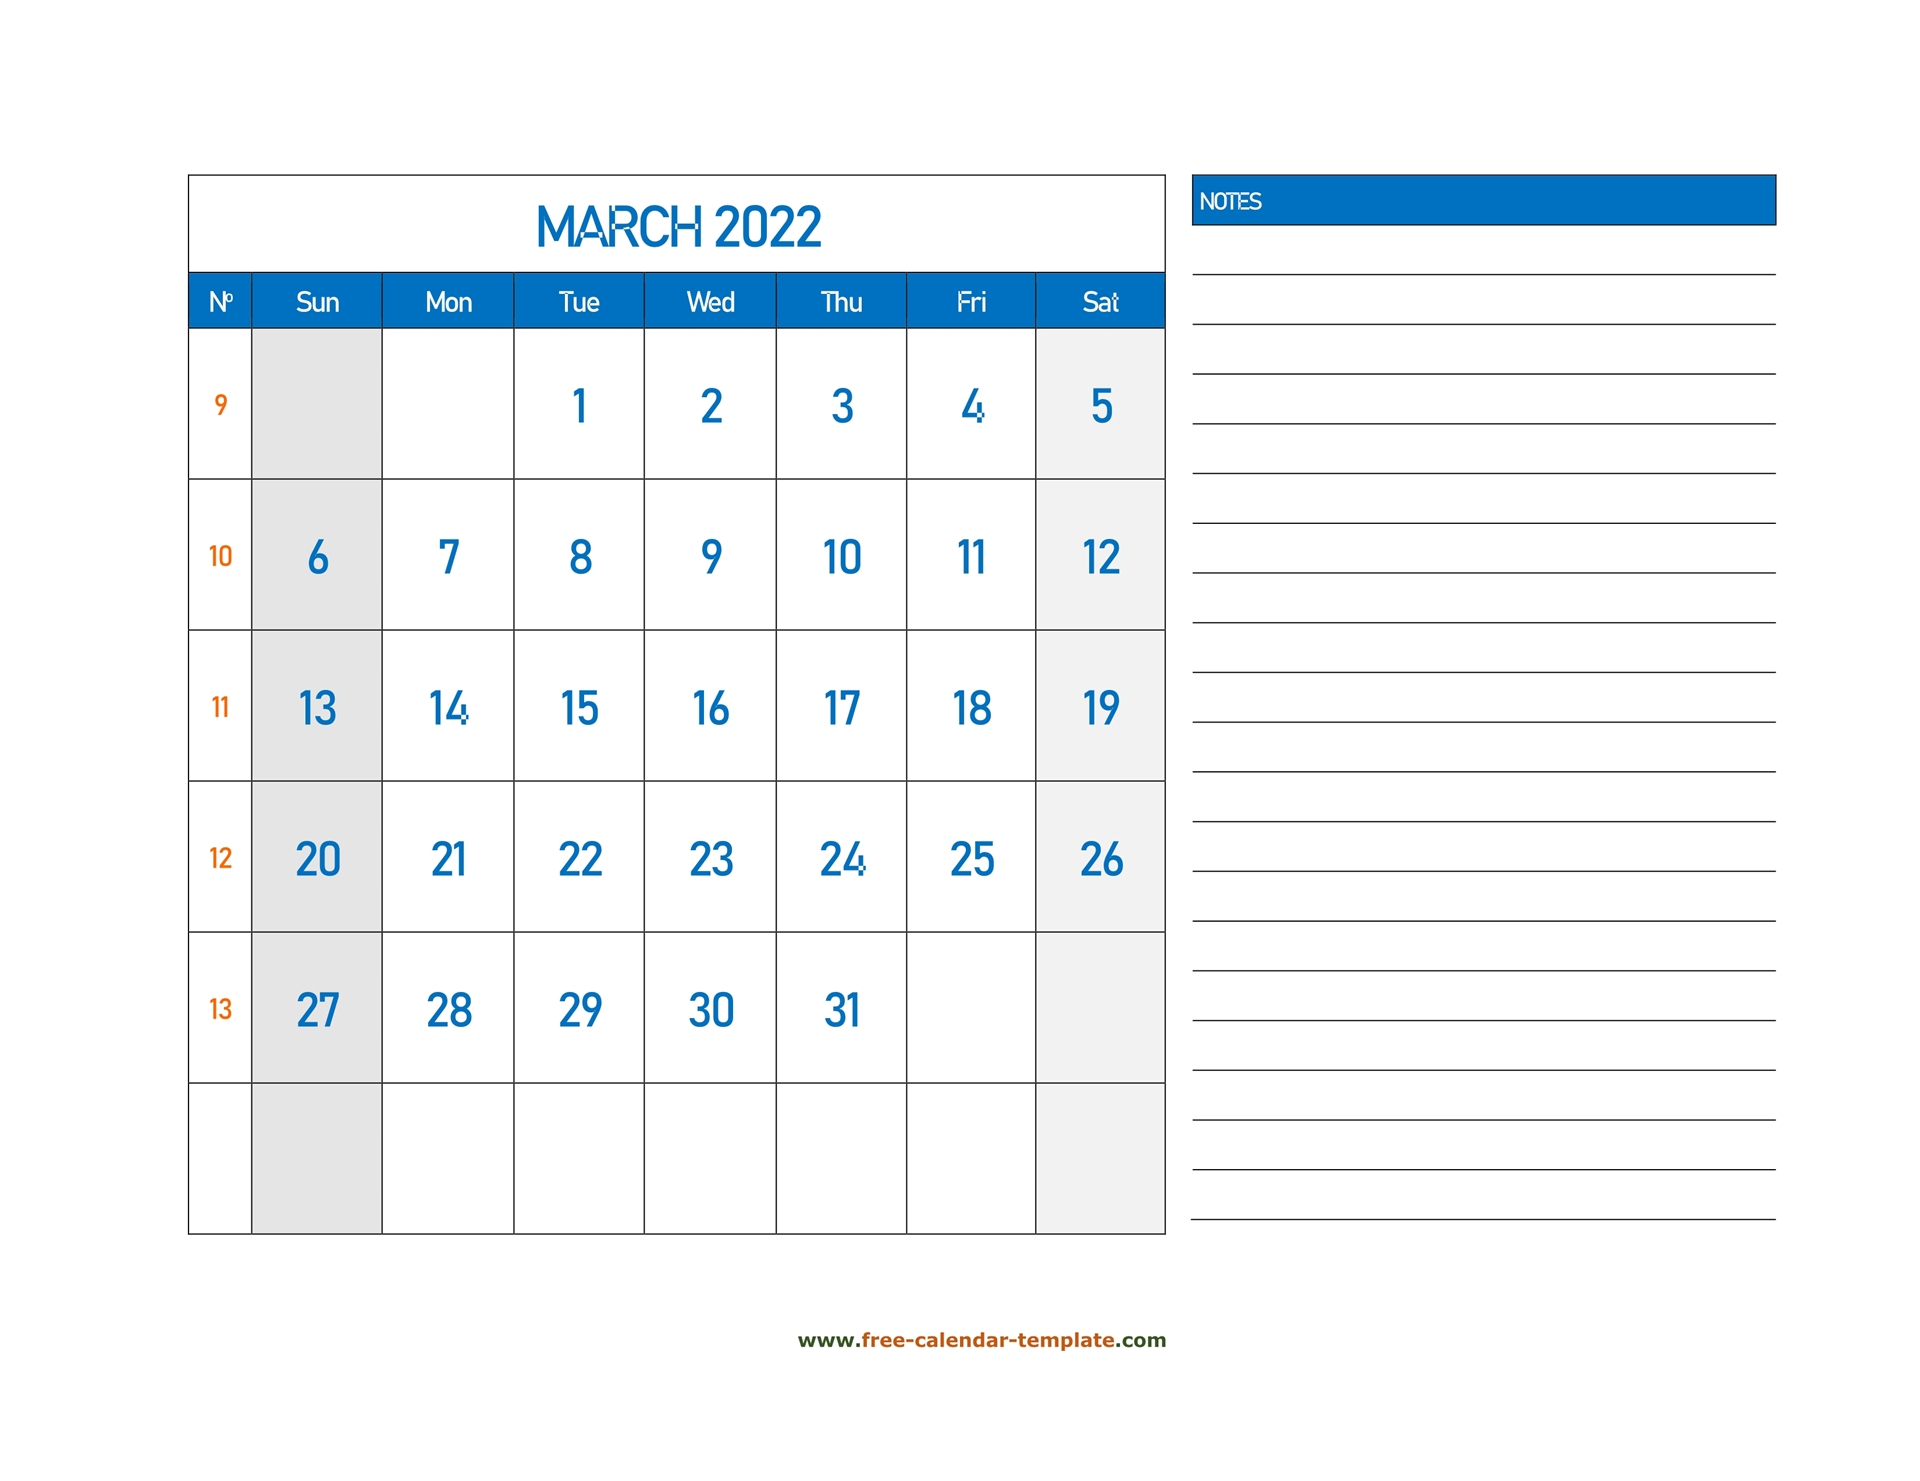 March Calendar 2022 Grid Lines For Holidays And Notes Pertaining To March And April 2022 Calendar Pages